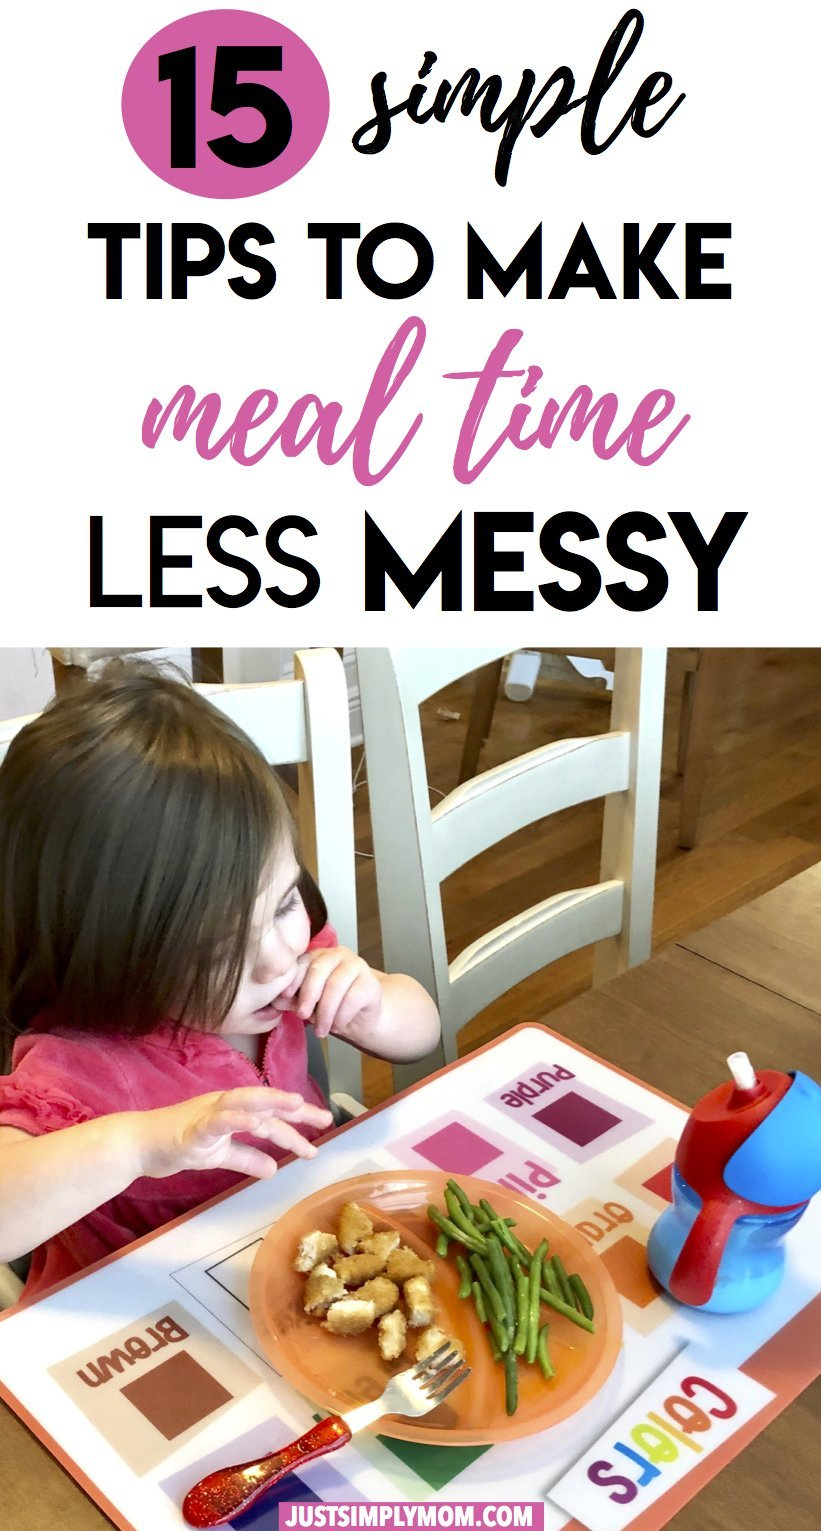 15 Simple Tips to Make Meal Time Less Messy